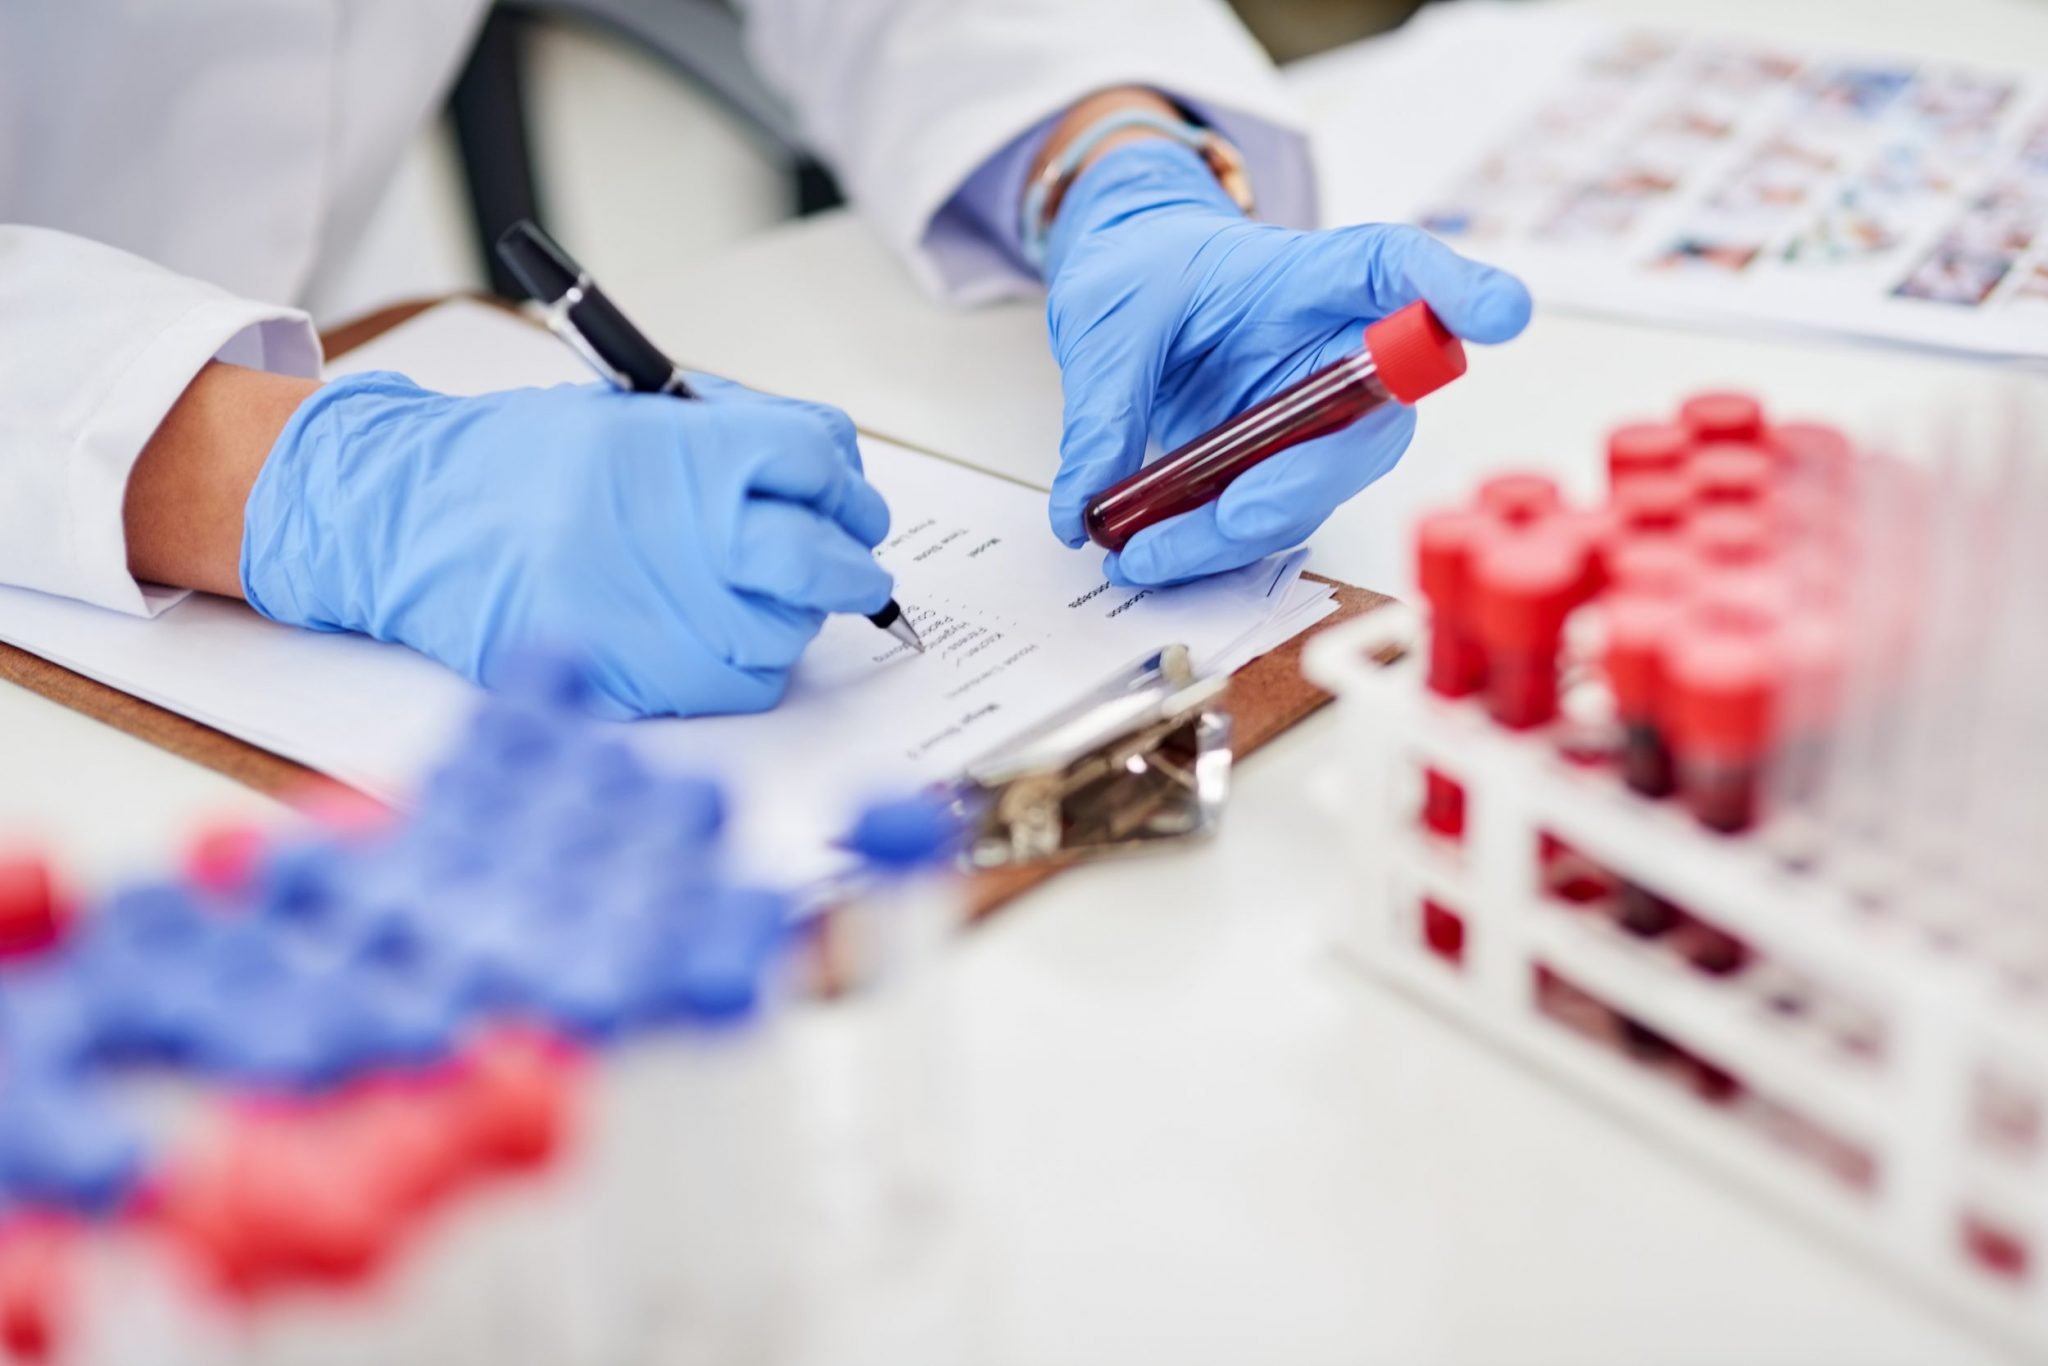 Blood samples clinical trial